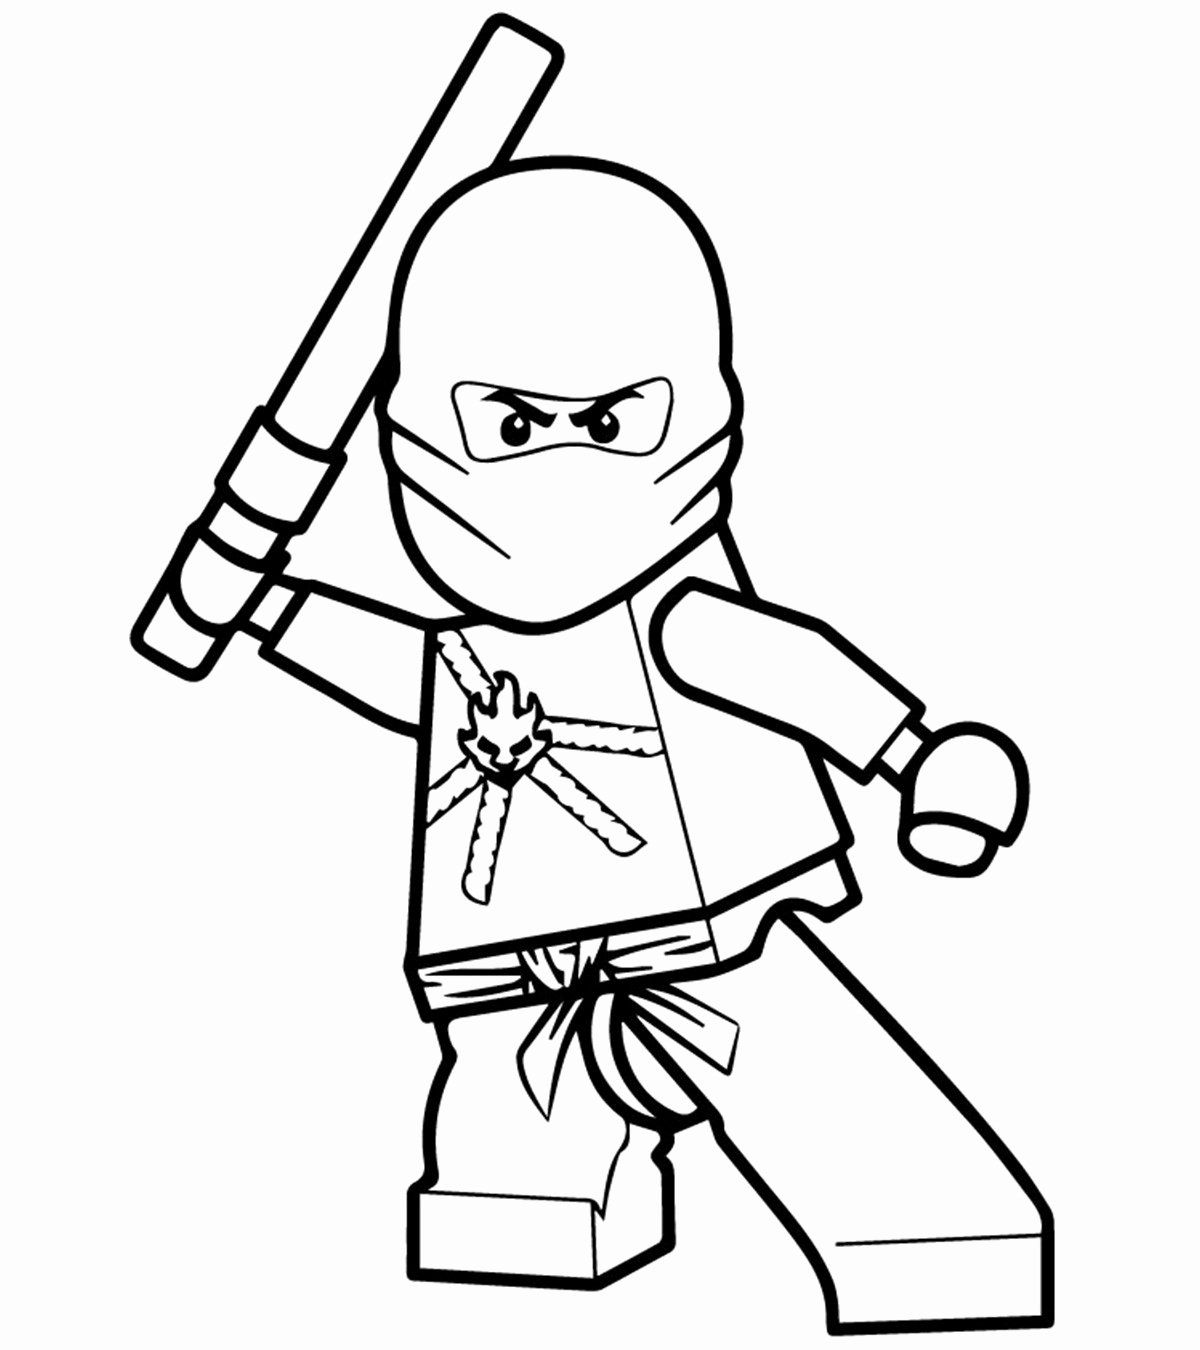 27 Dragon Age Adult Coloring Book In 2020 Lego Coloring Pages Ninjago Coloring Pages Lego Coloring